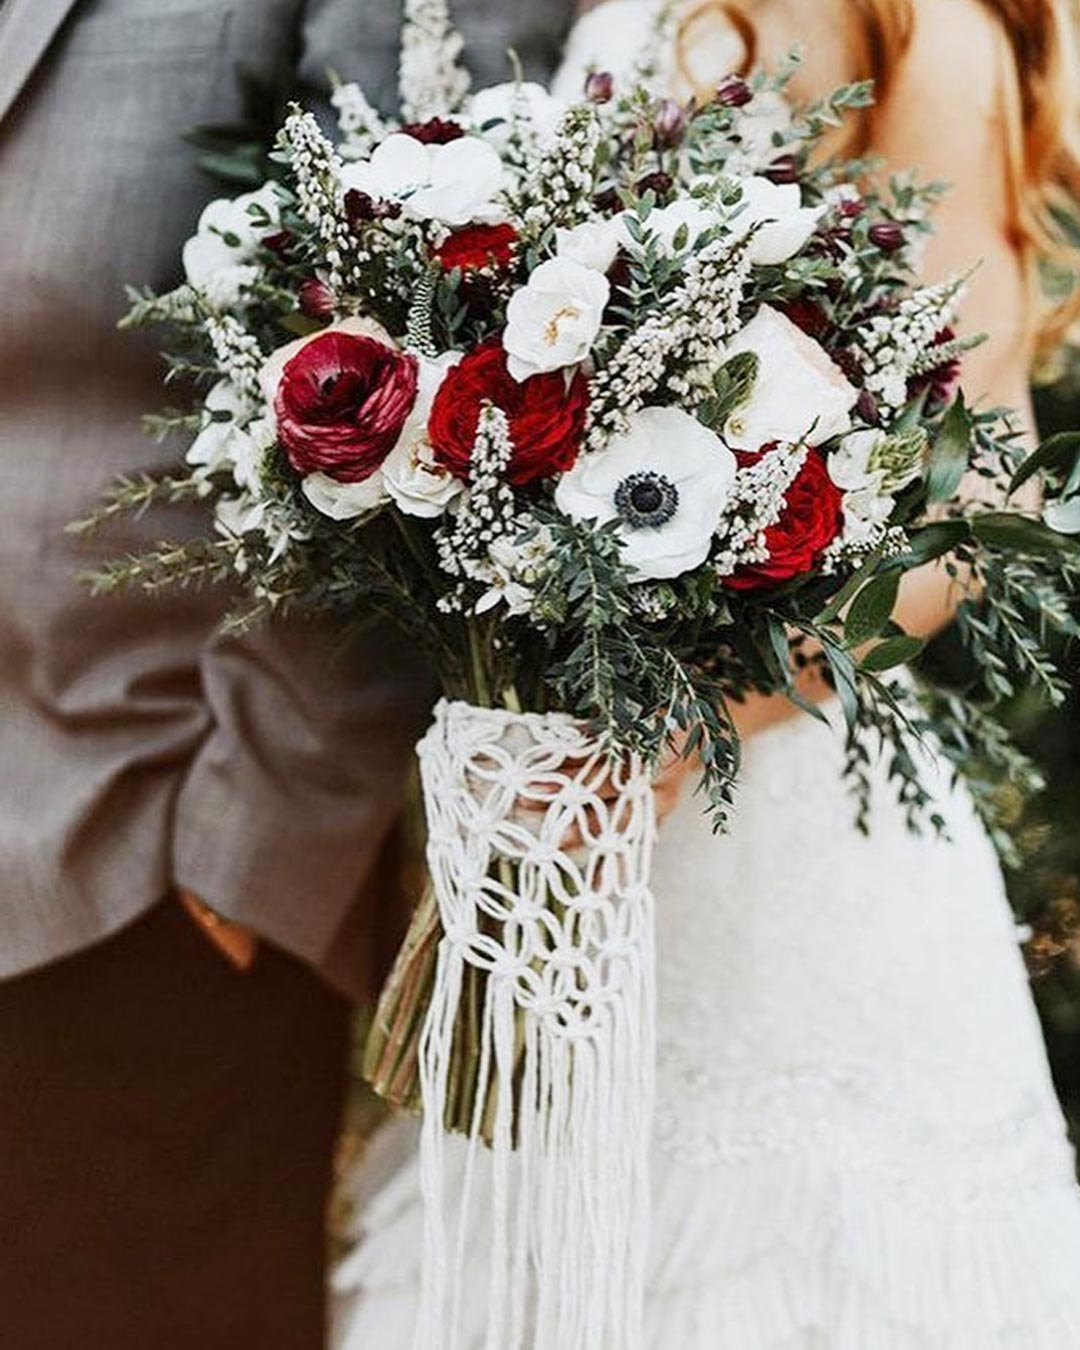 wedding colors red white bouquet bride